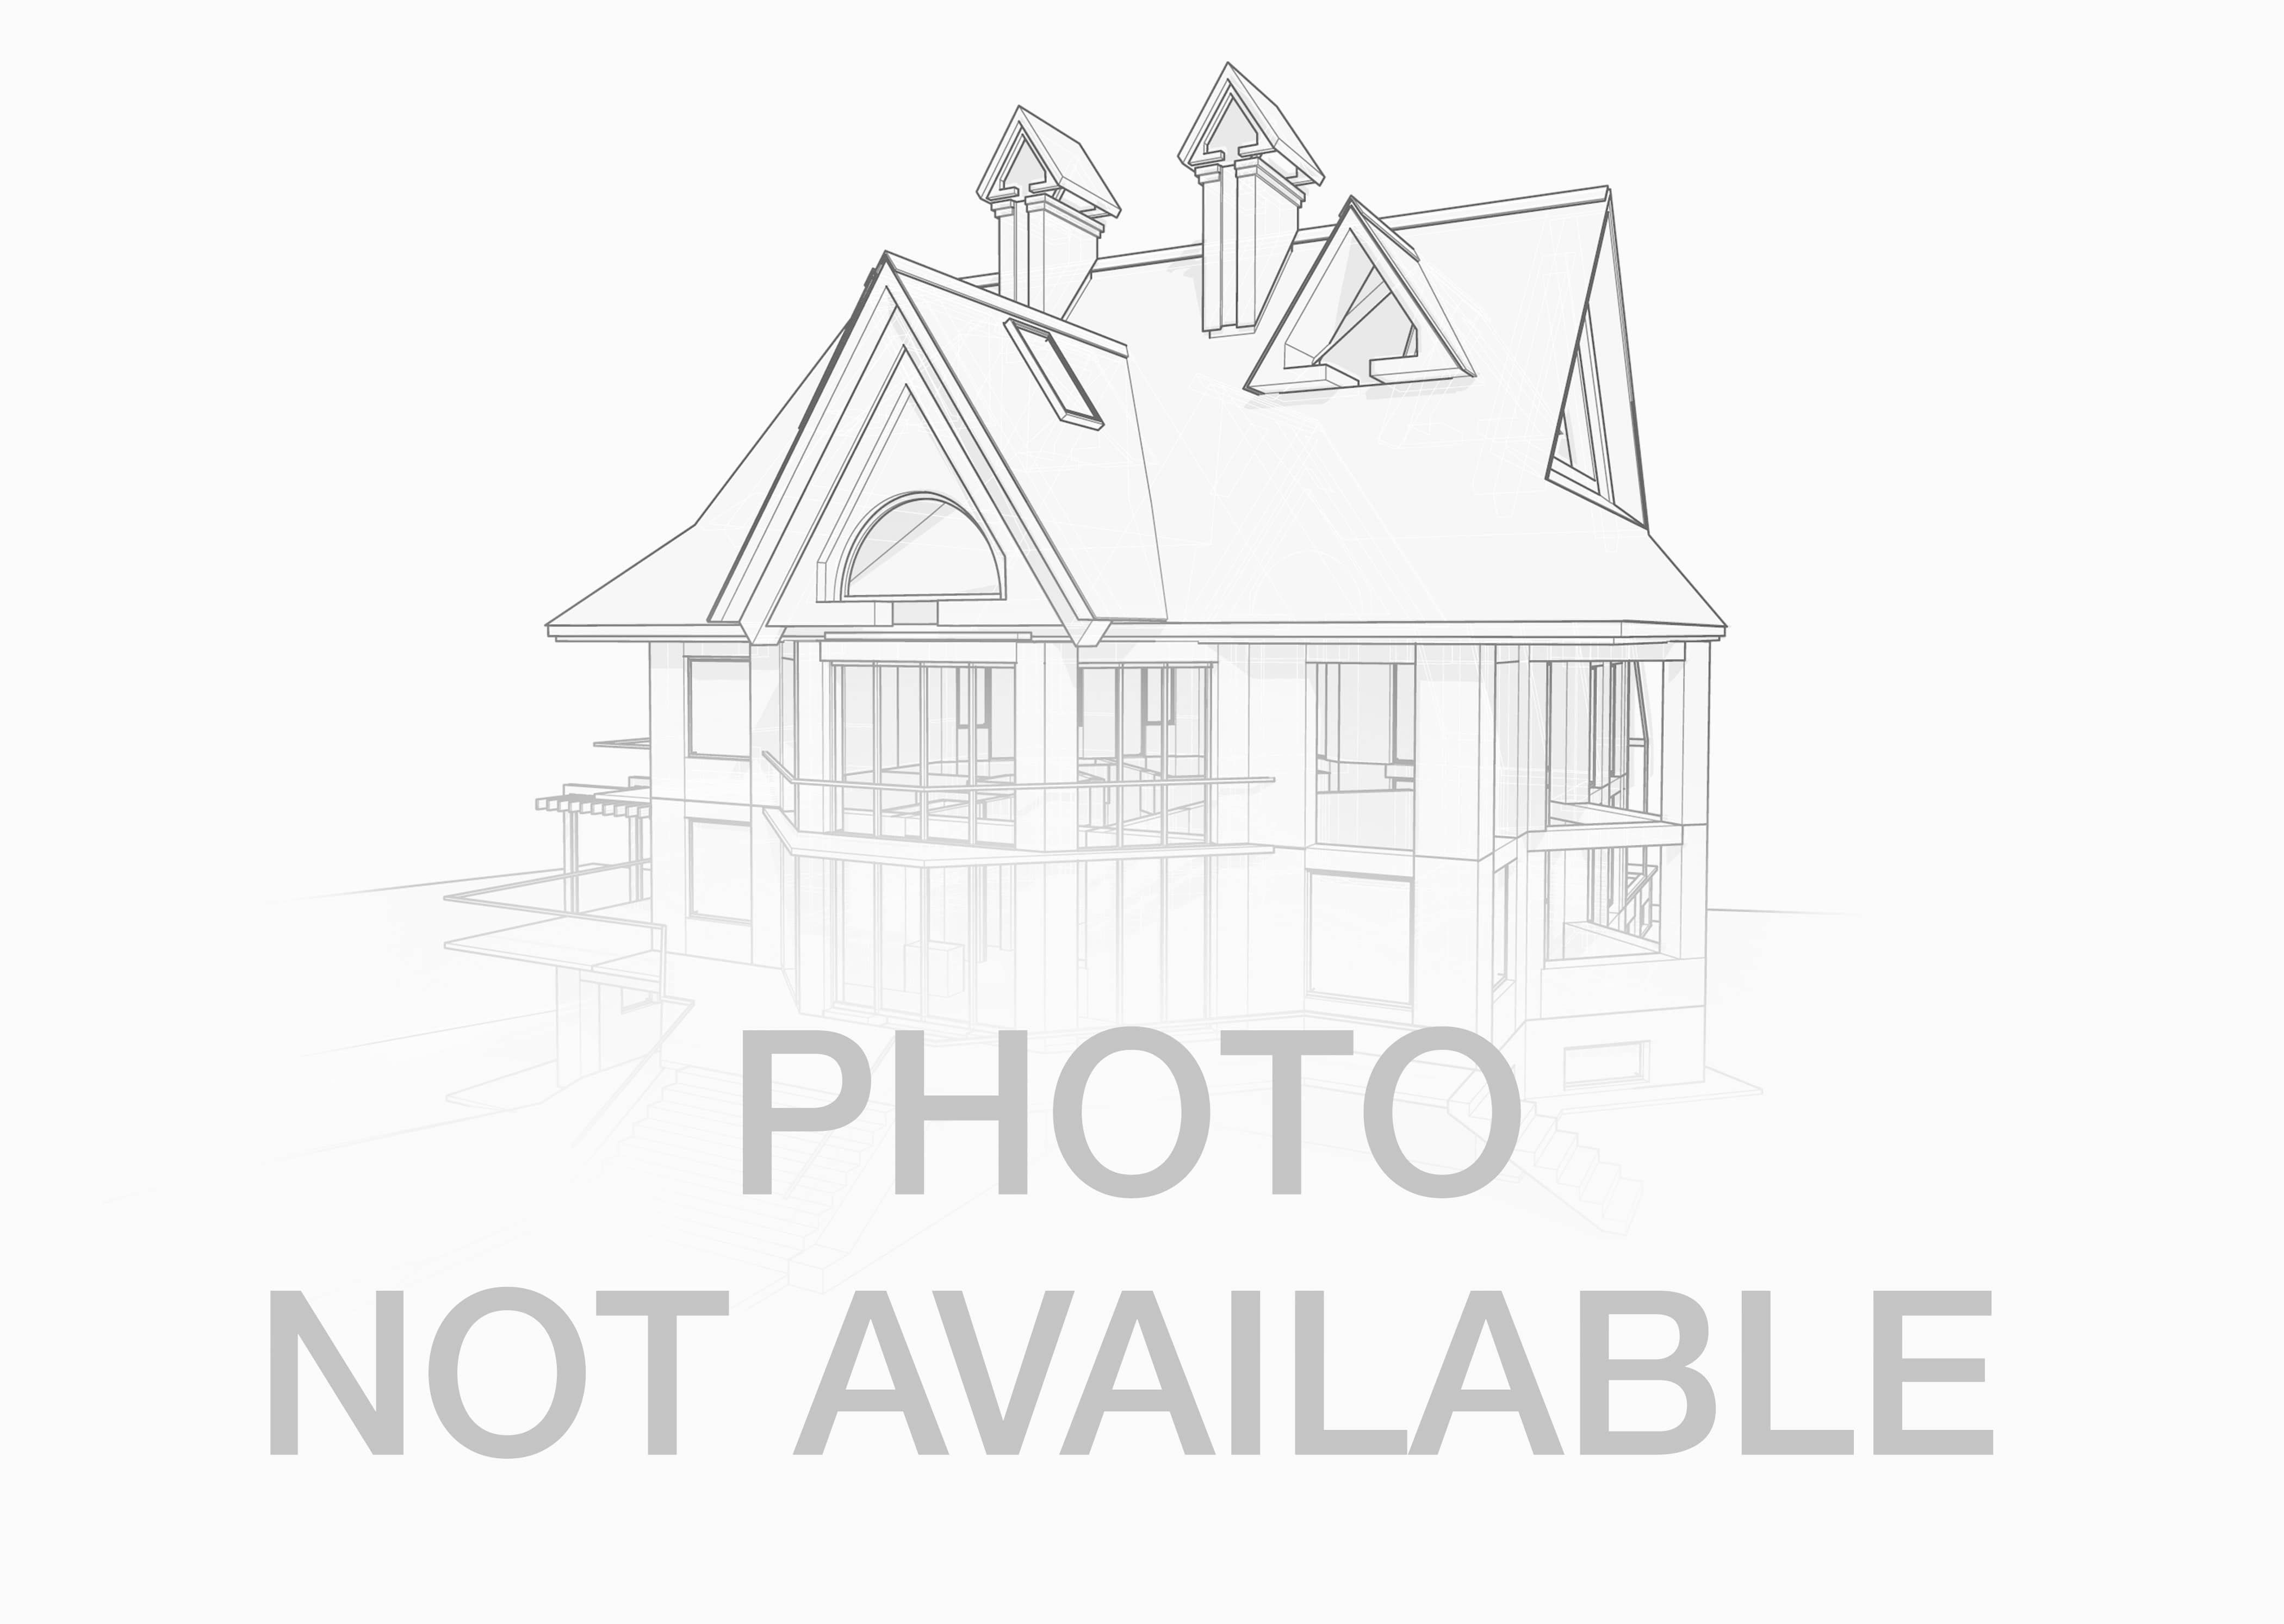 Renee Cowan with Cowan Realty: Listings Search Results